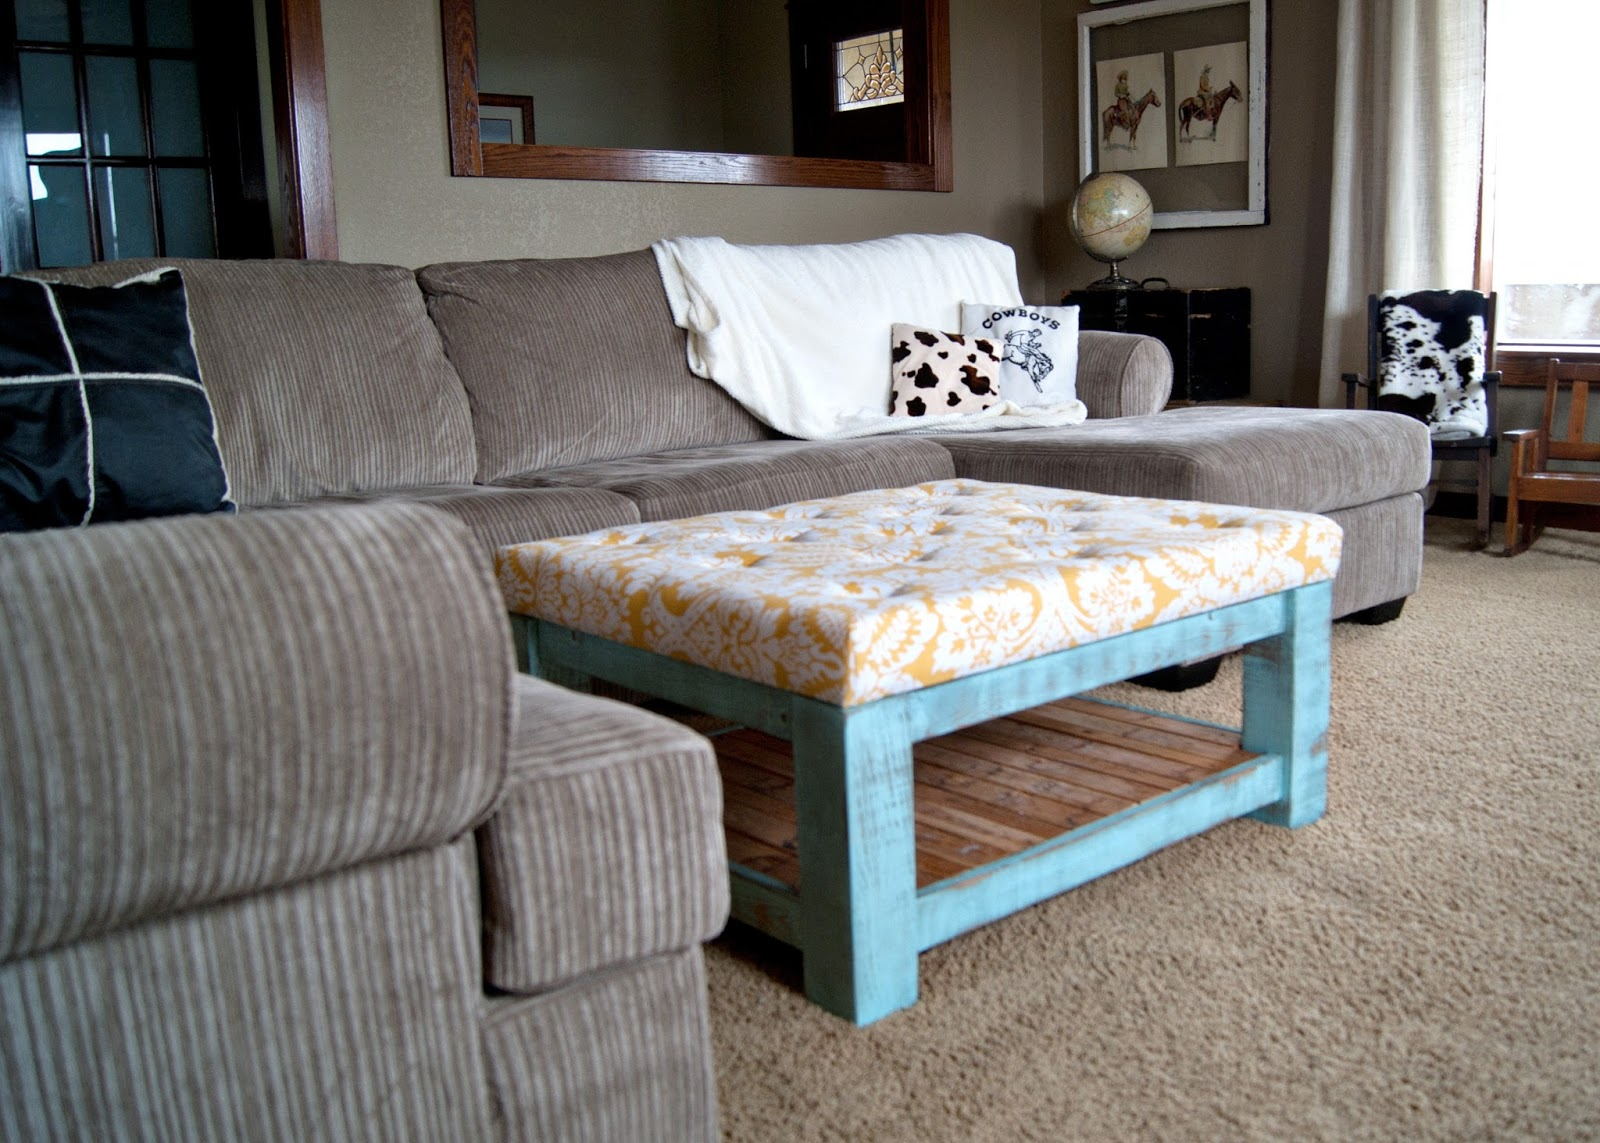 tufted ottoman using Kreg Jig